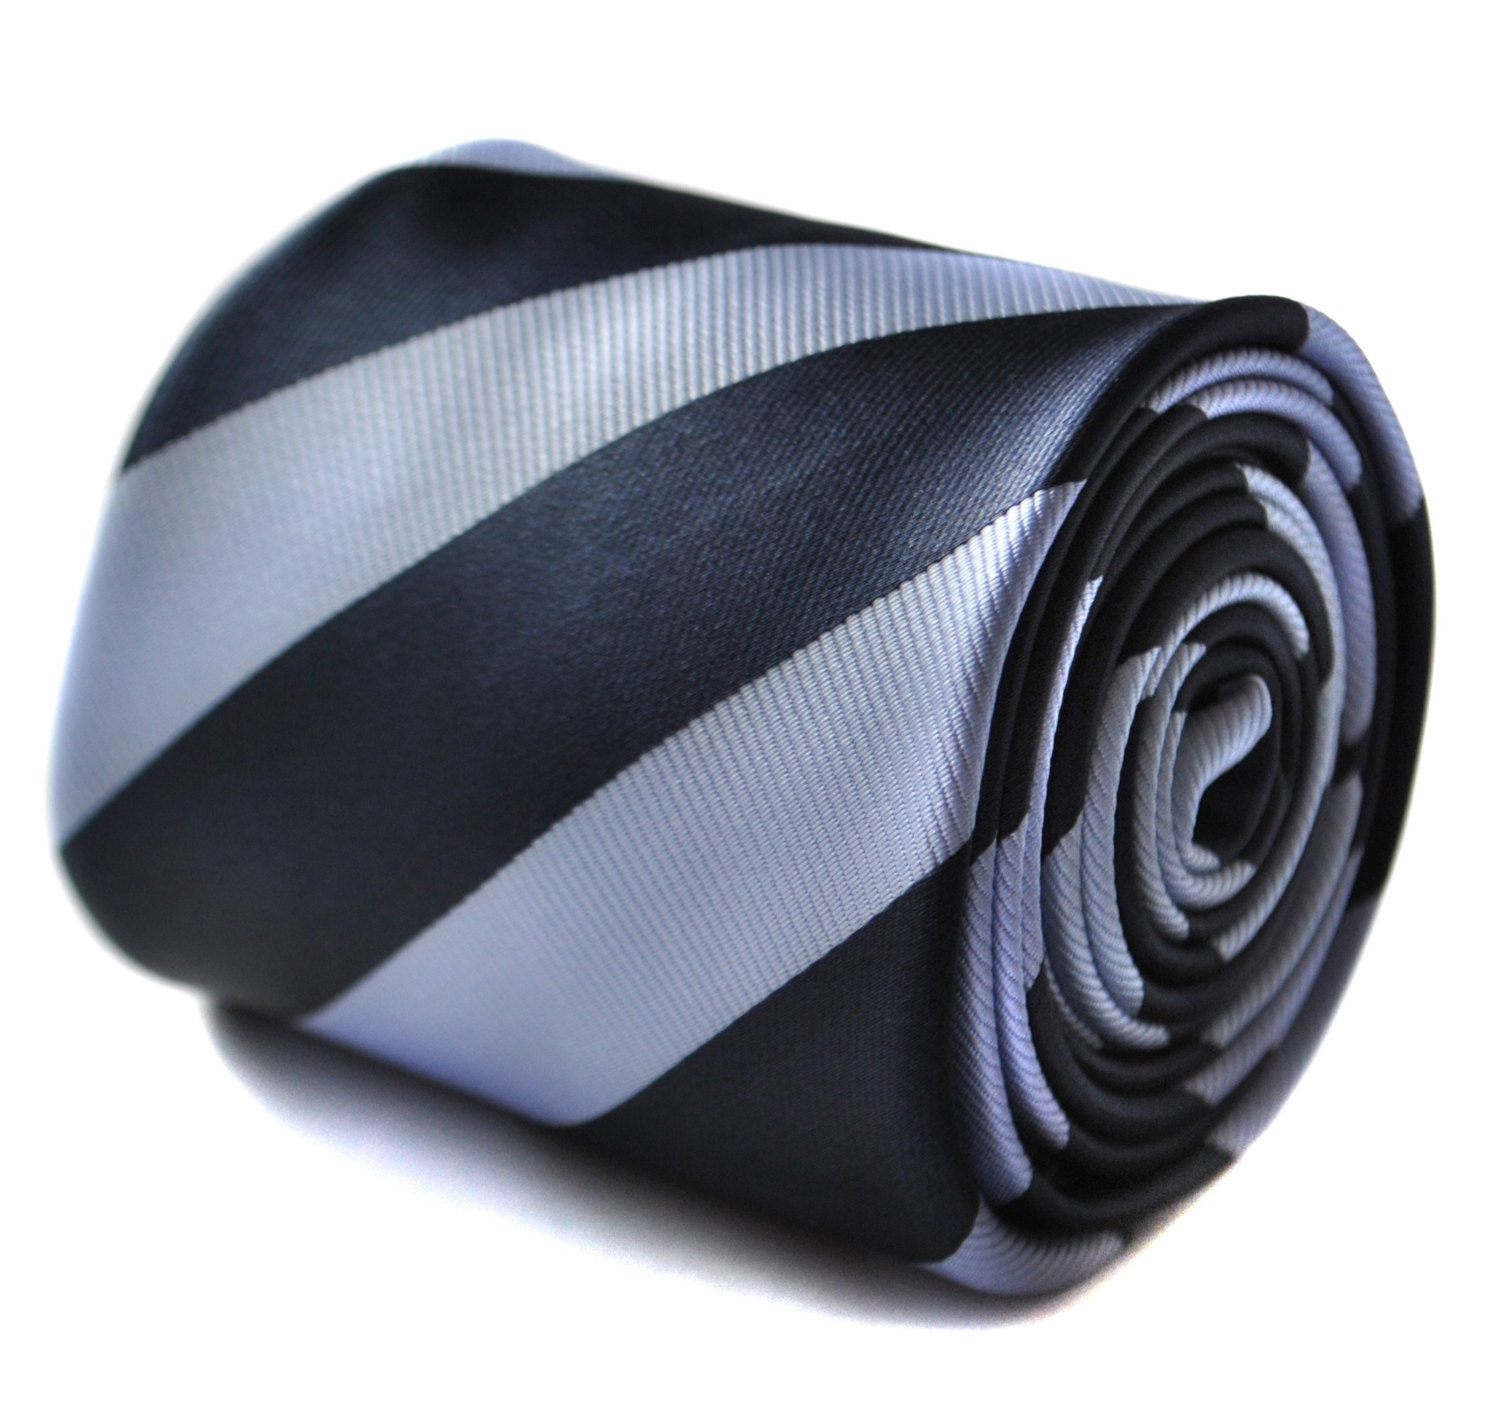 Navy and light blue barber striped tie with floral design to the rear by Frederi